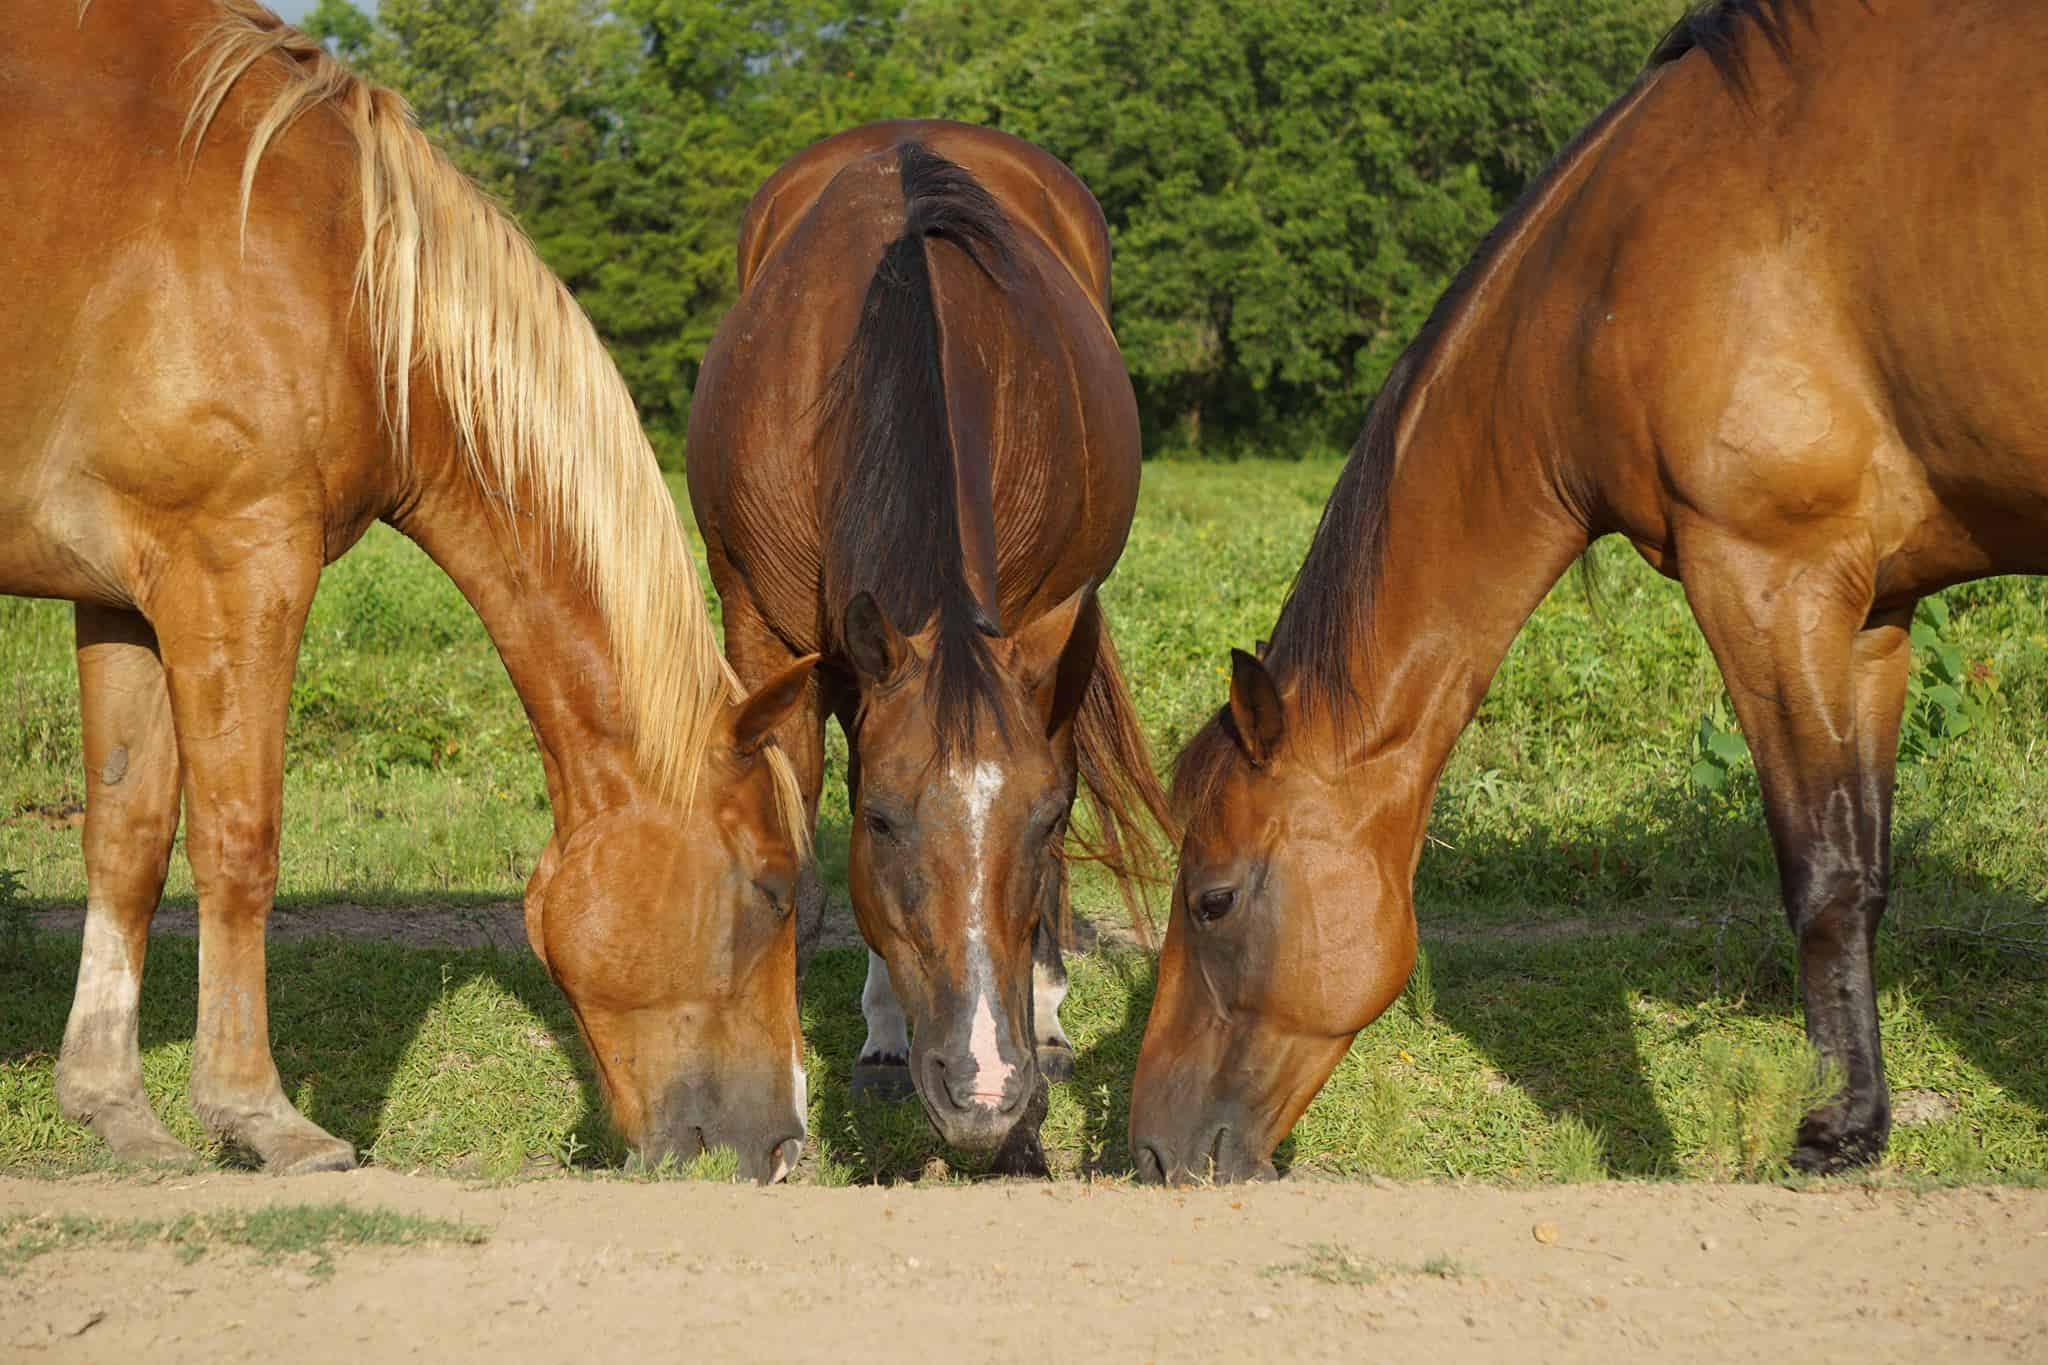 Three horses eat grass outside together.